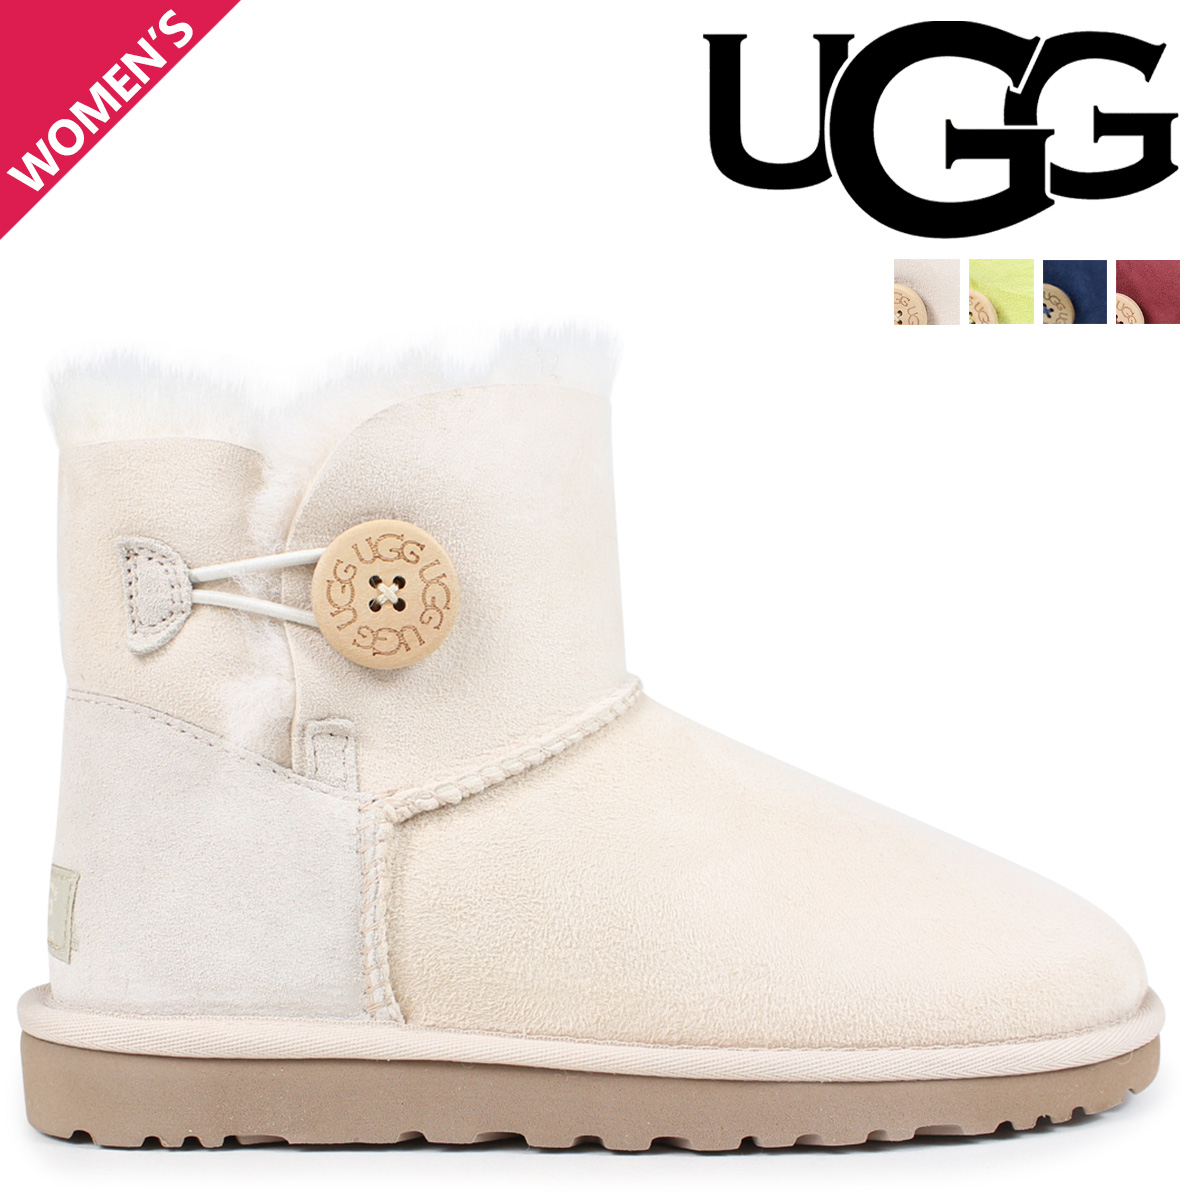 3125d06f49cb UGG UGG women s mini Bailey button Sheepskin boots 3352 WOMENS MINI BAILEY  BUTTON Womens Sheepskin at 50% off!